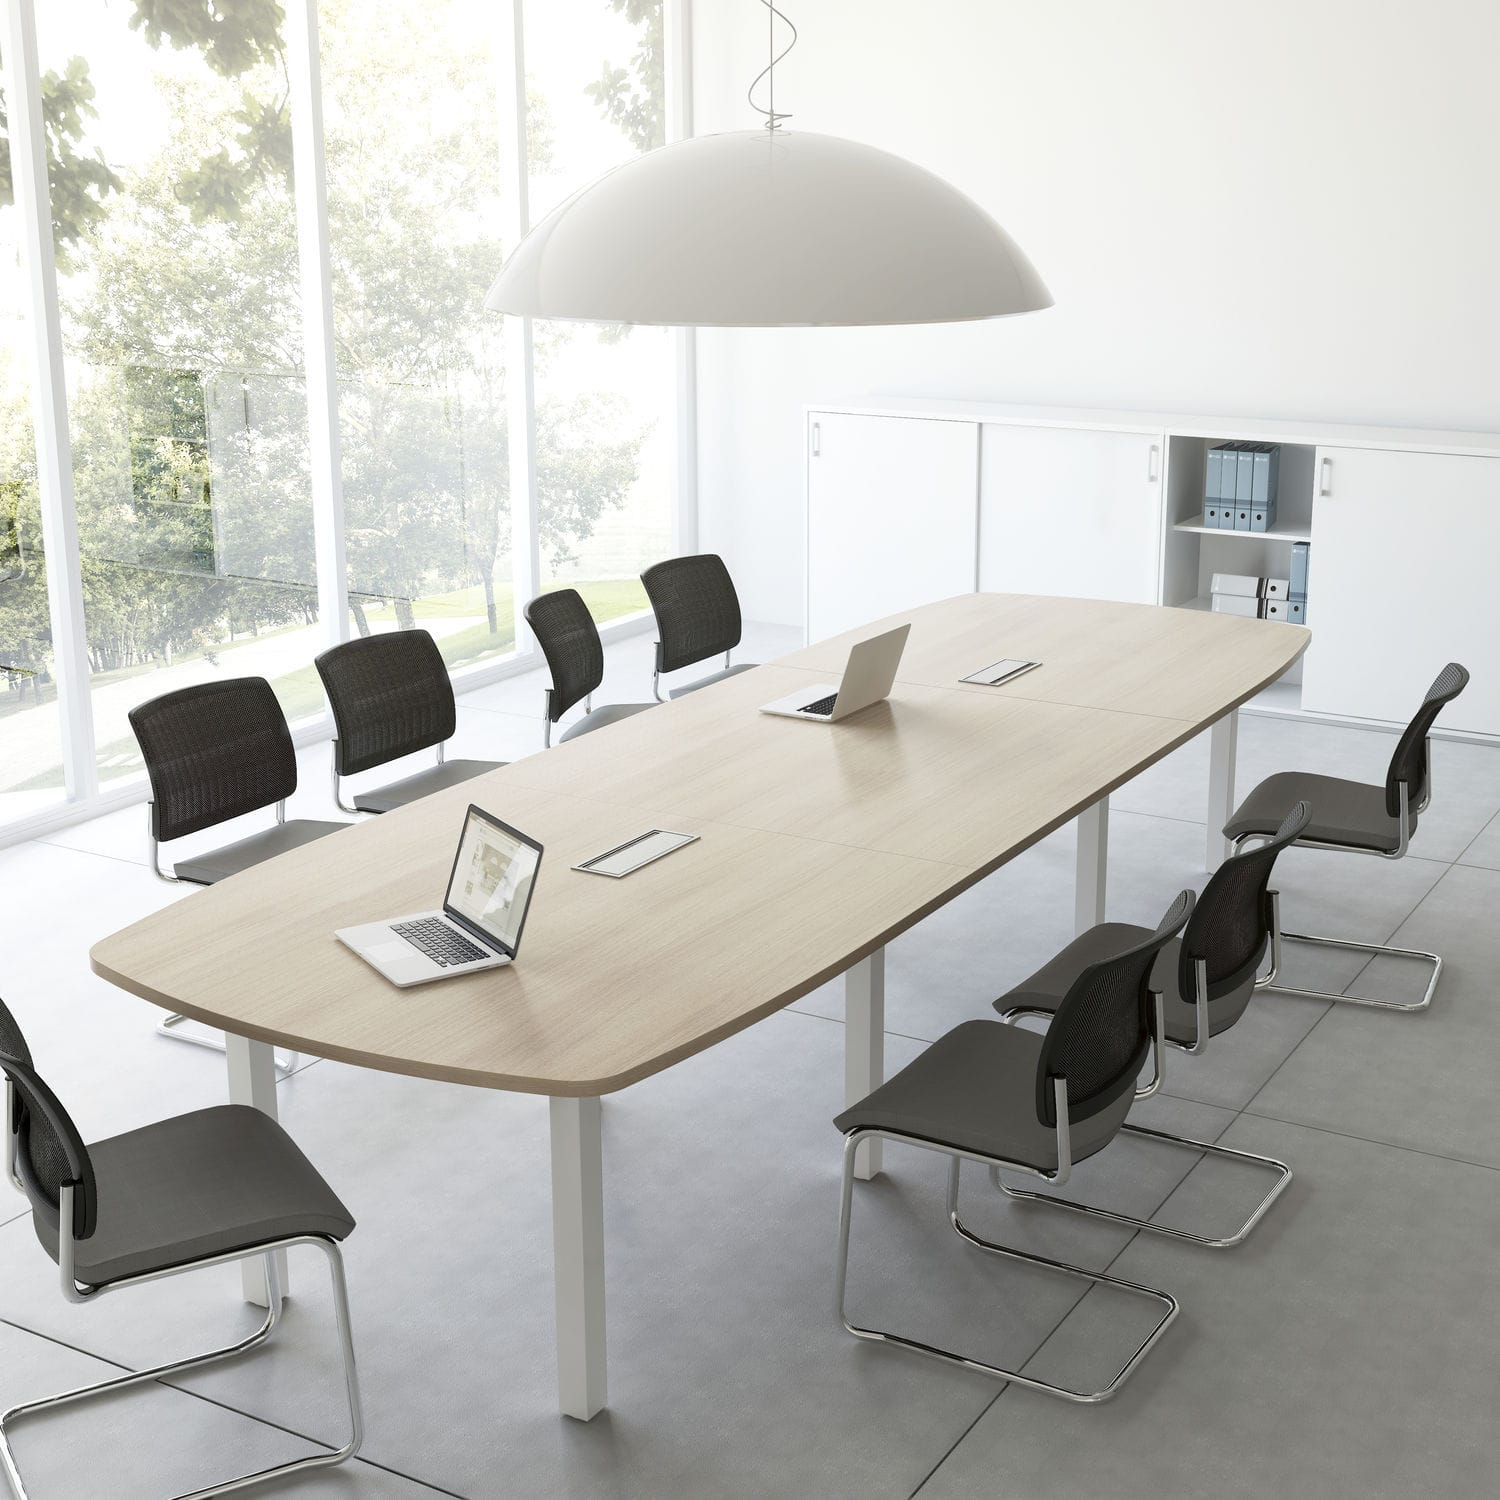 Contemporary boardroom table wooden rectangular round